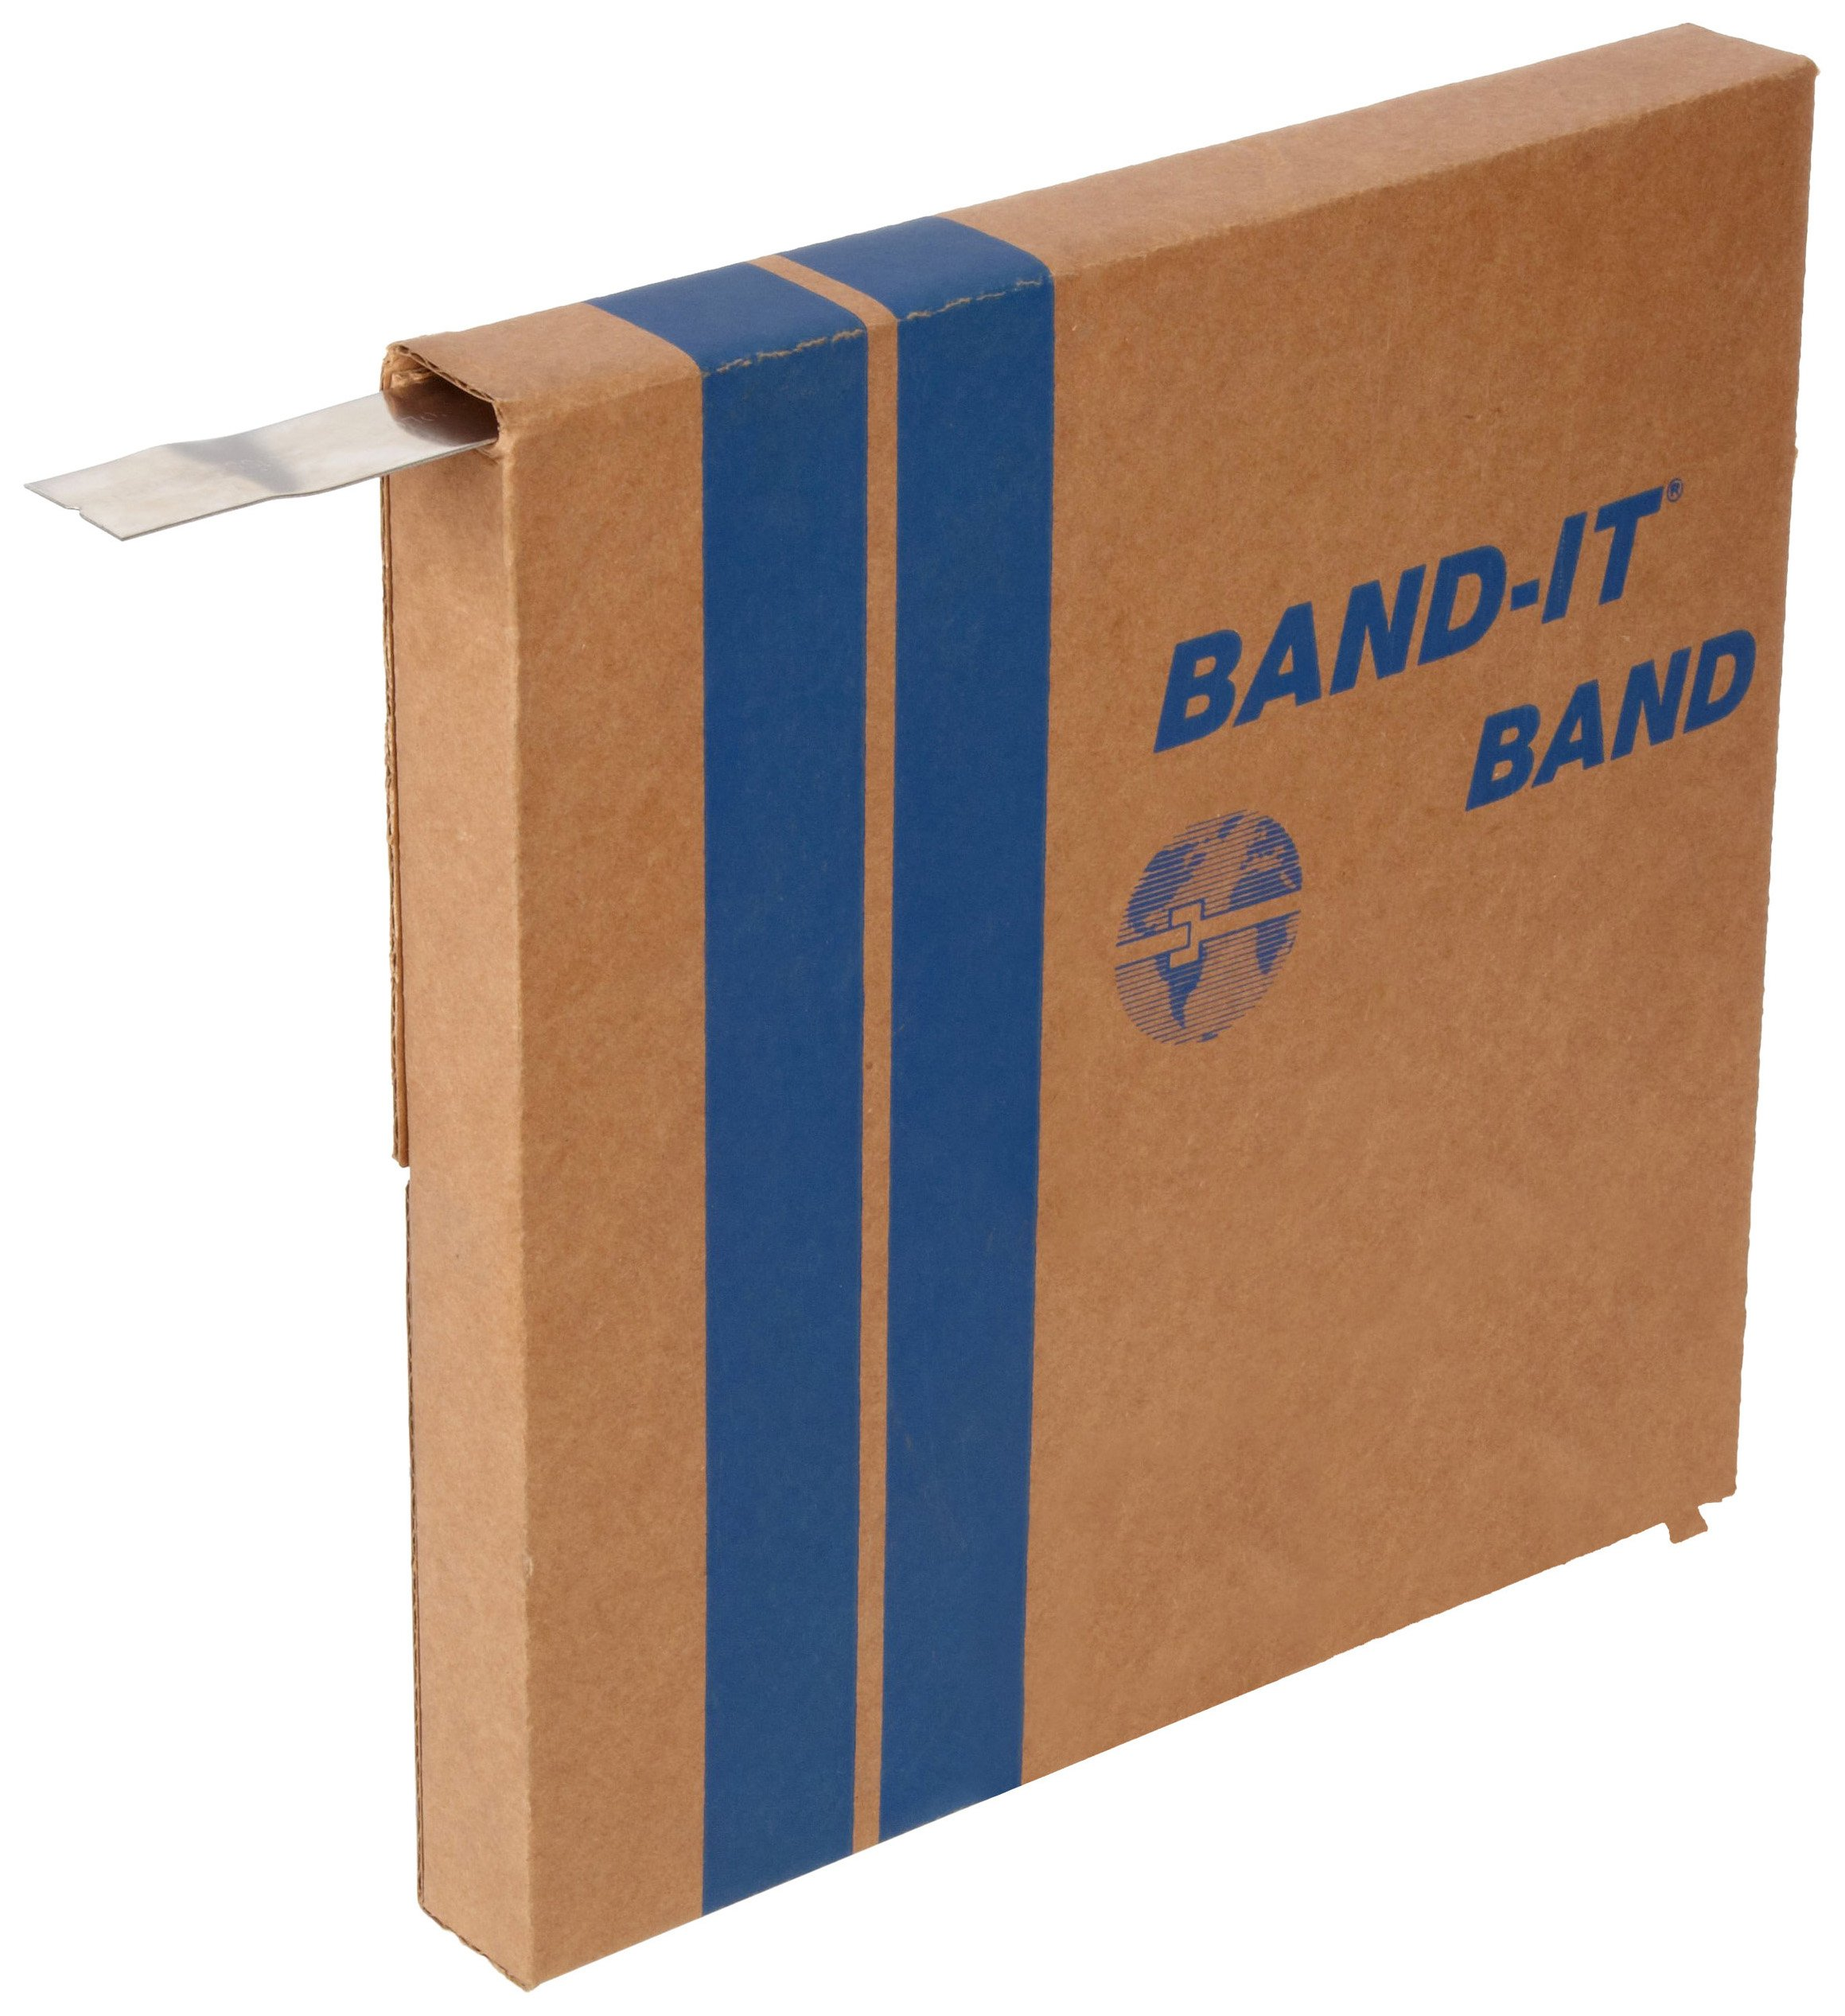 BAND-IT C20299 201 Stainless Steel Bright Annealed Finish Band, 1/4'' Width X 0.020'' Thick, 100 Feet Roll by Band-It